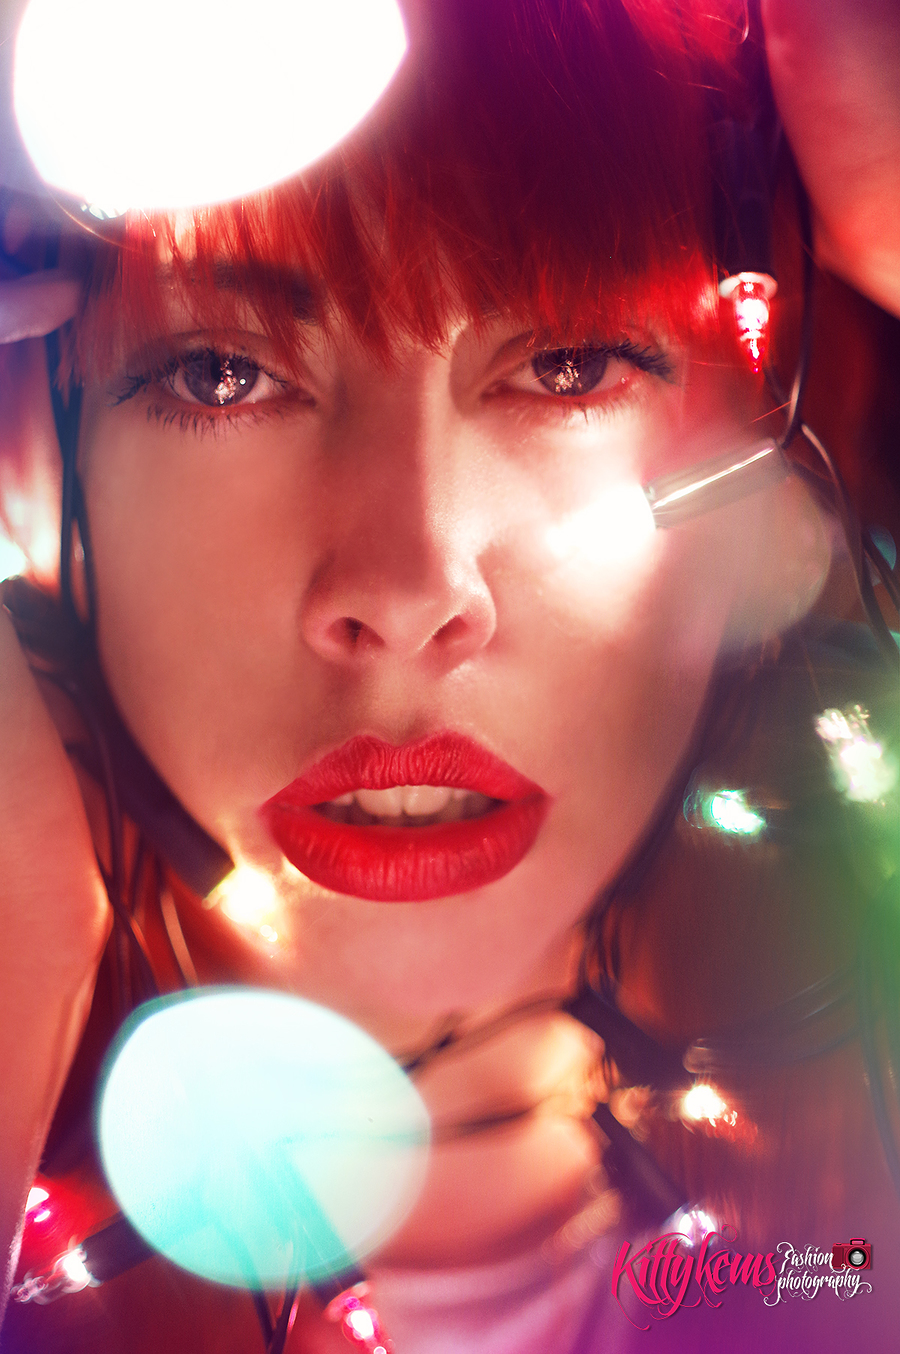 Laura and the lights / Photography by Kitty KEMS Photography, Makeup by Kitty KEMS Photography, Post processing by Kitty KEMS Photography, Taken at Kitty KEMS Photography / Uploaded 15th April 2017 @ 10:59 AM